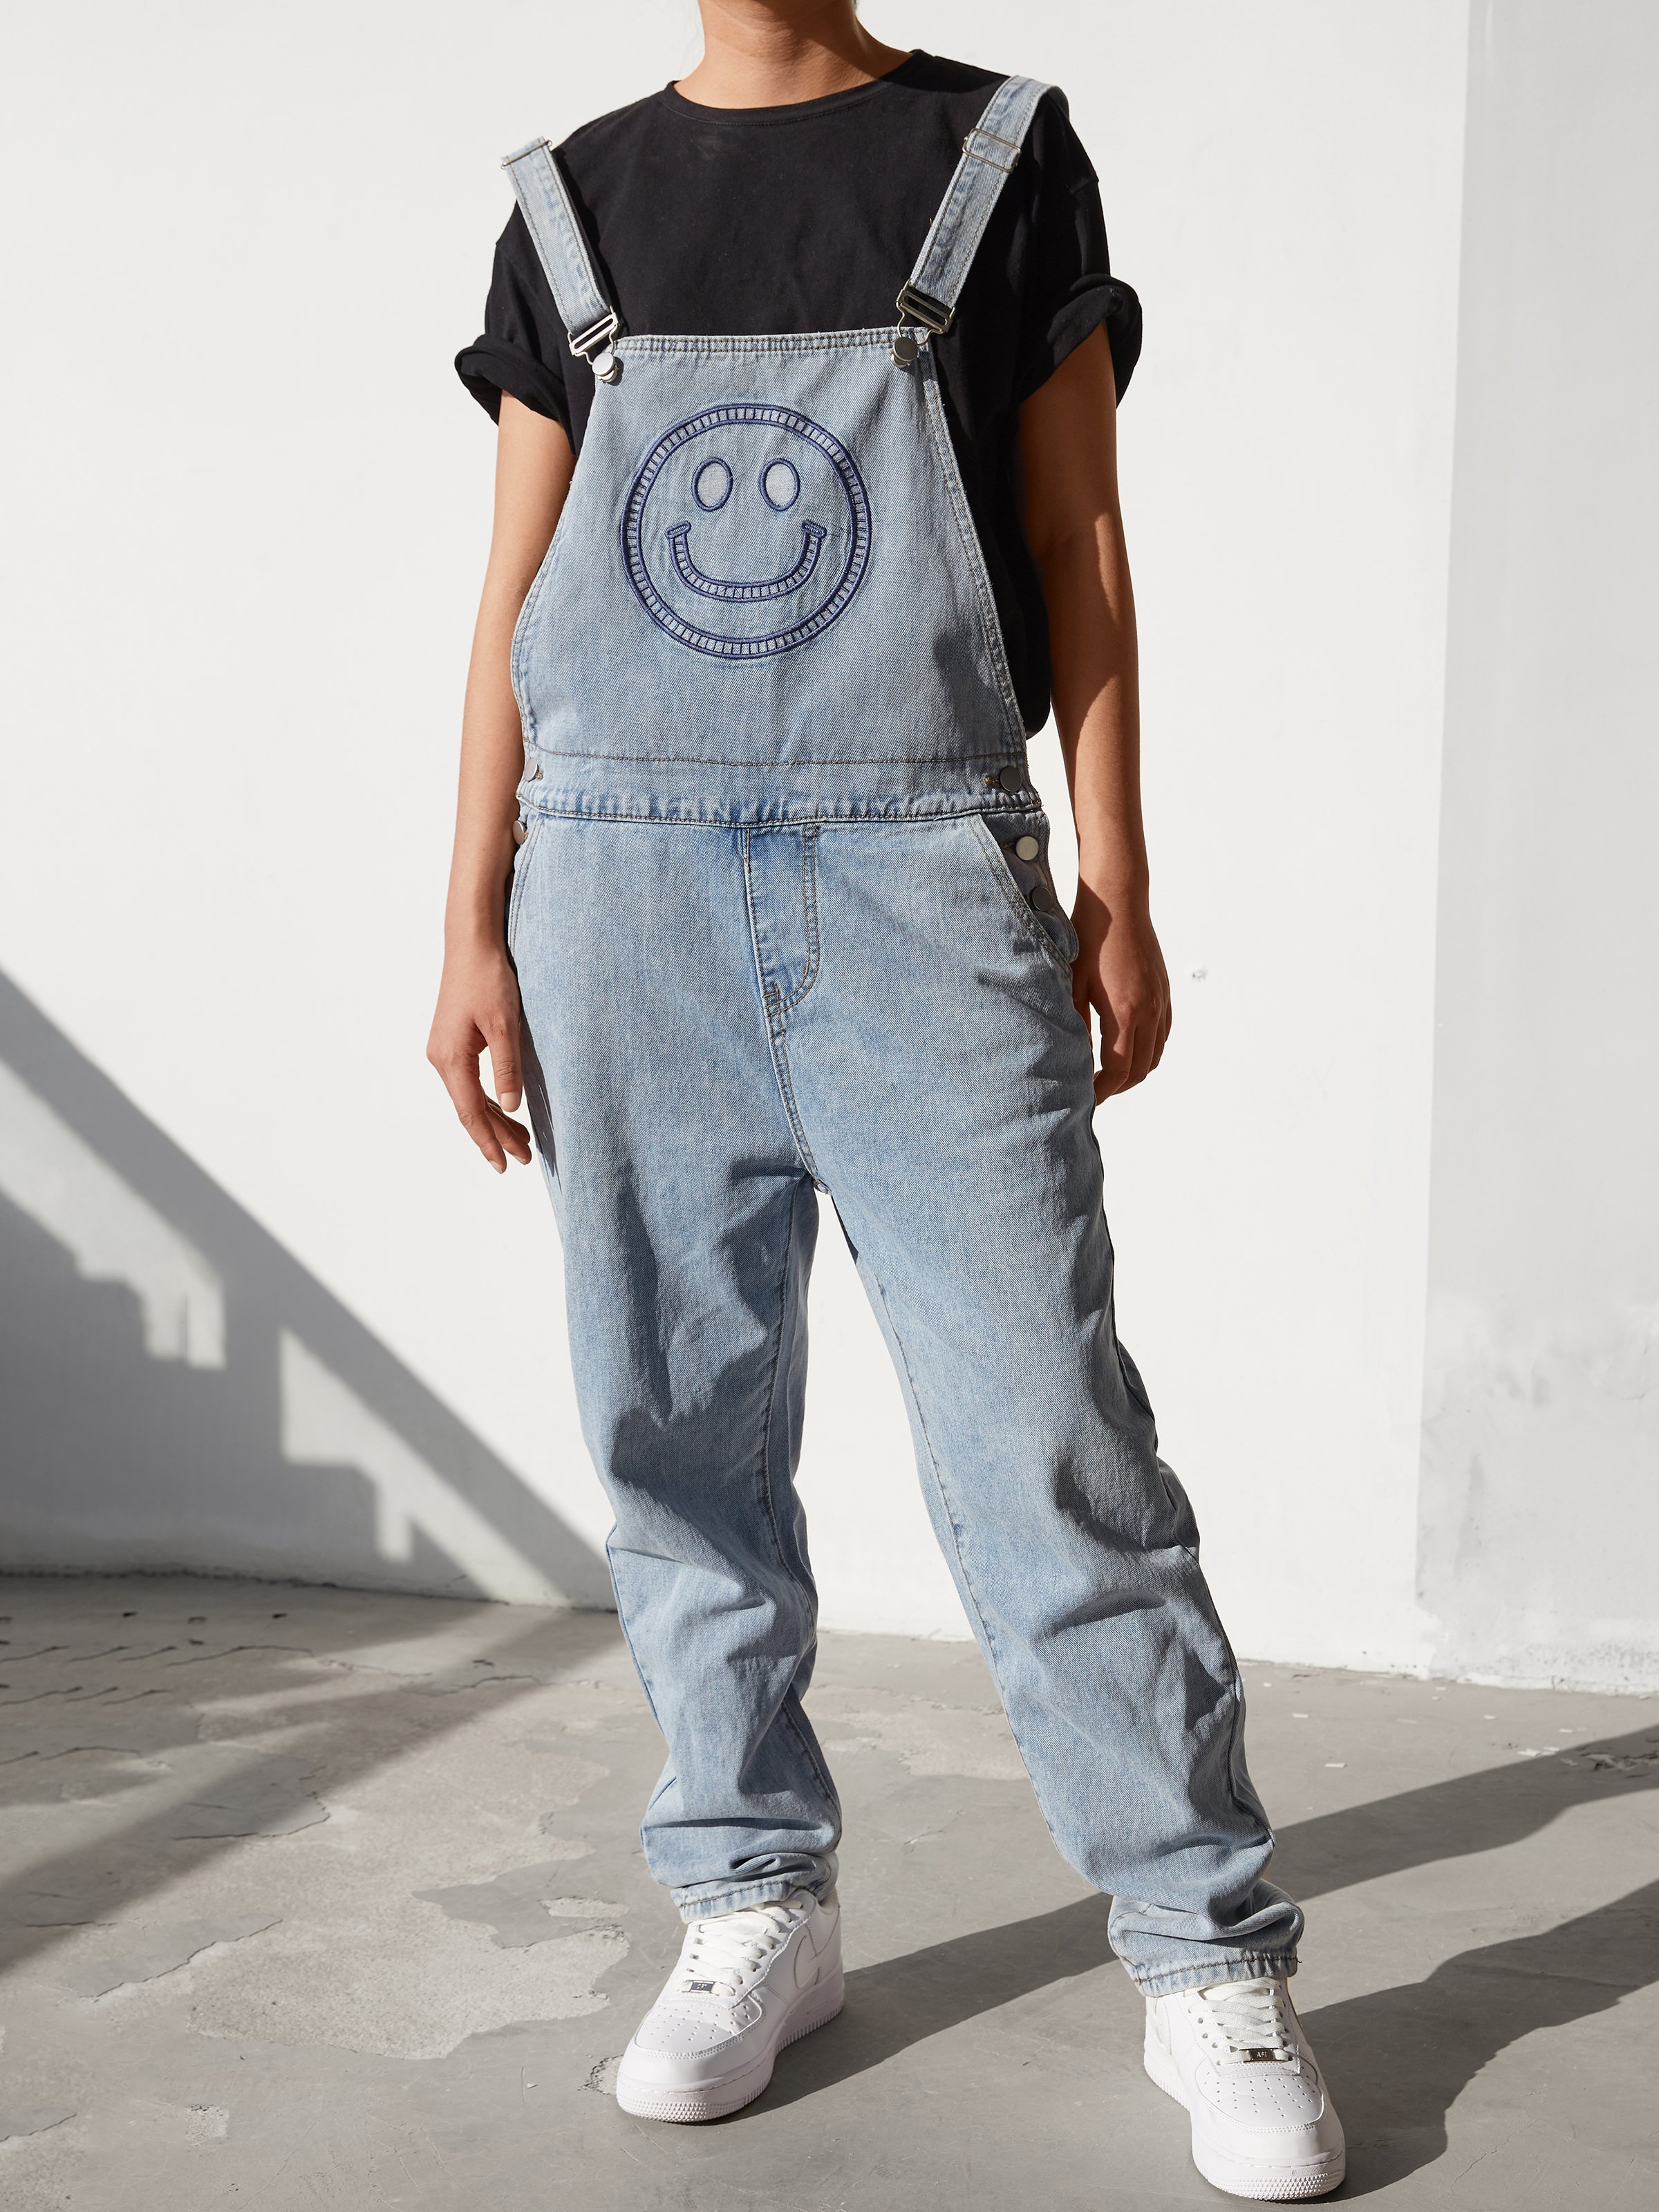 Smiley Face Embroidered Overall - Blue XL